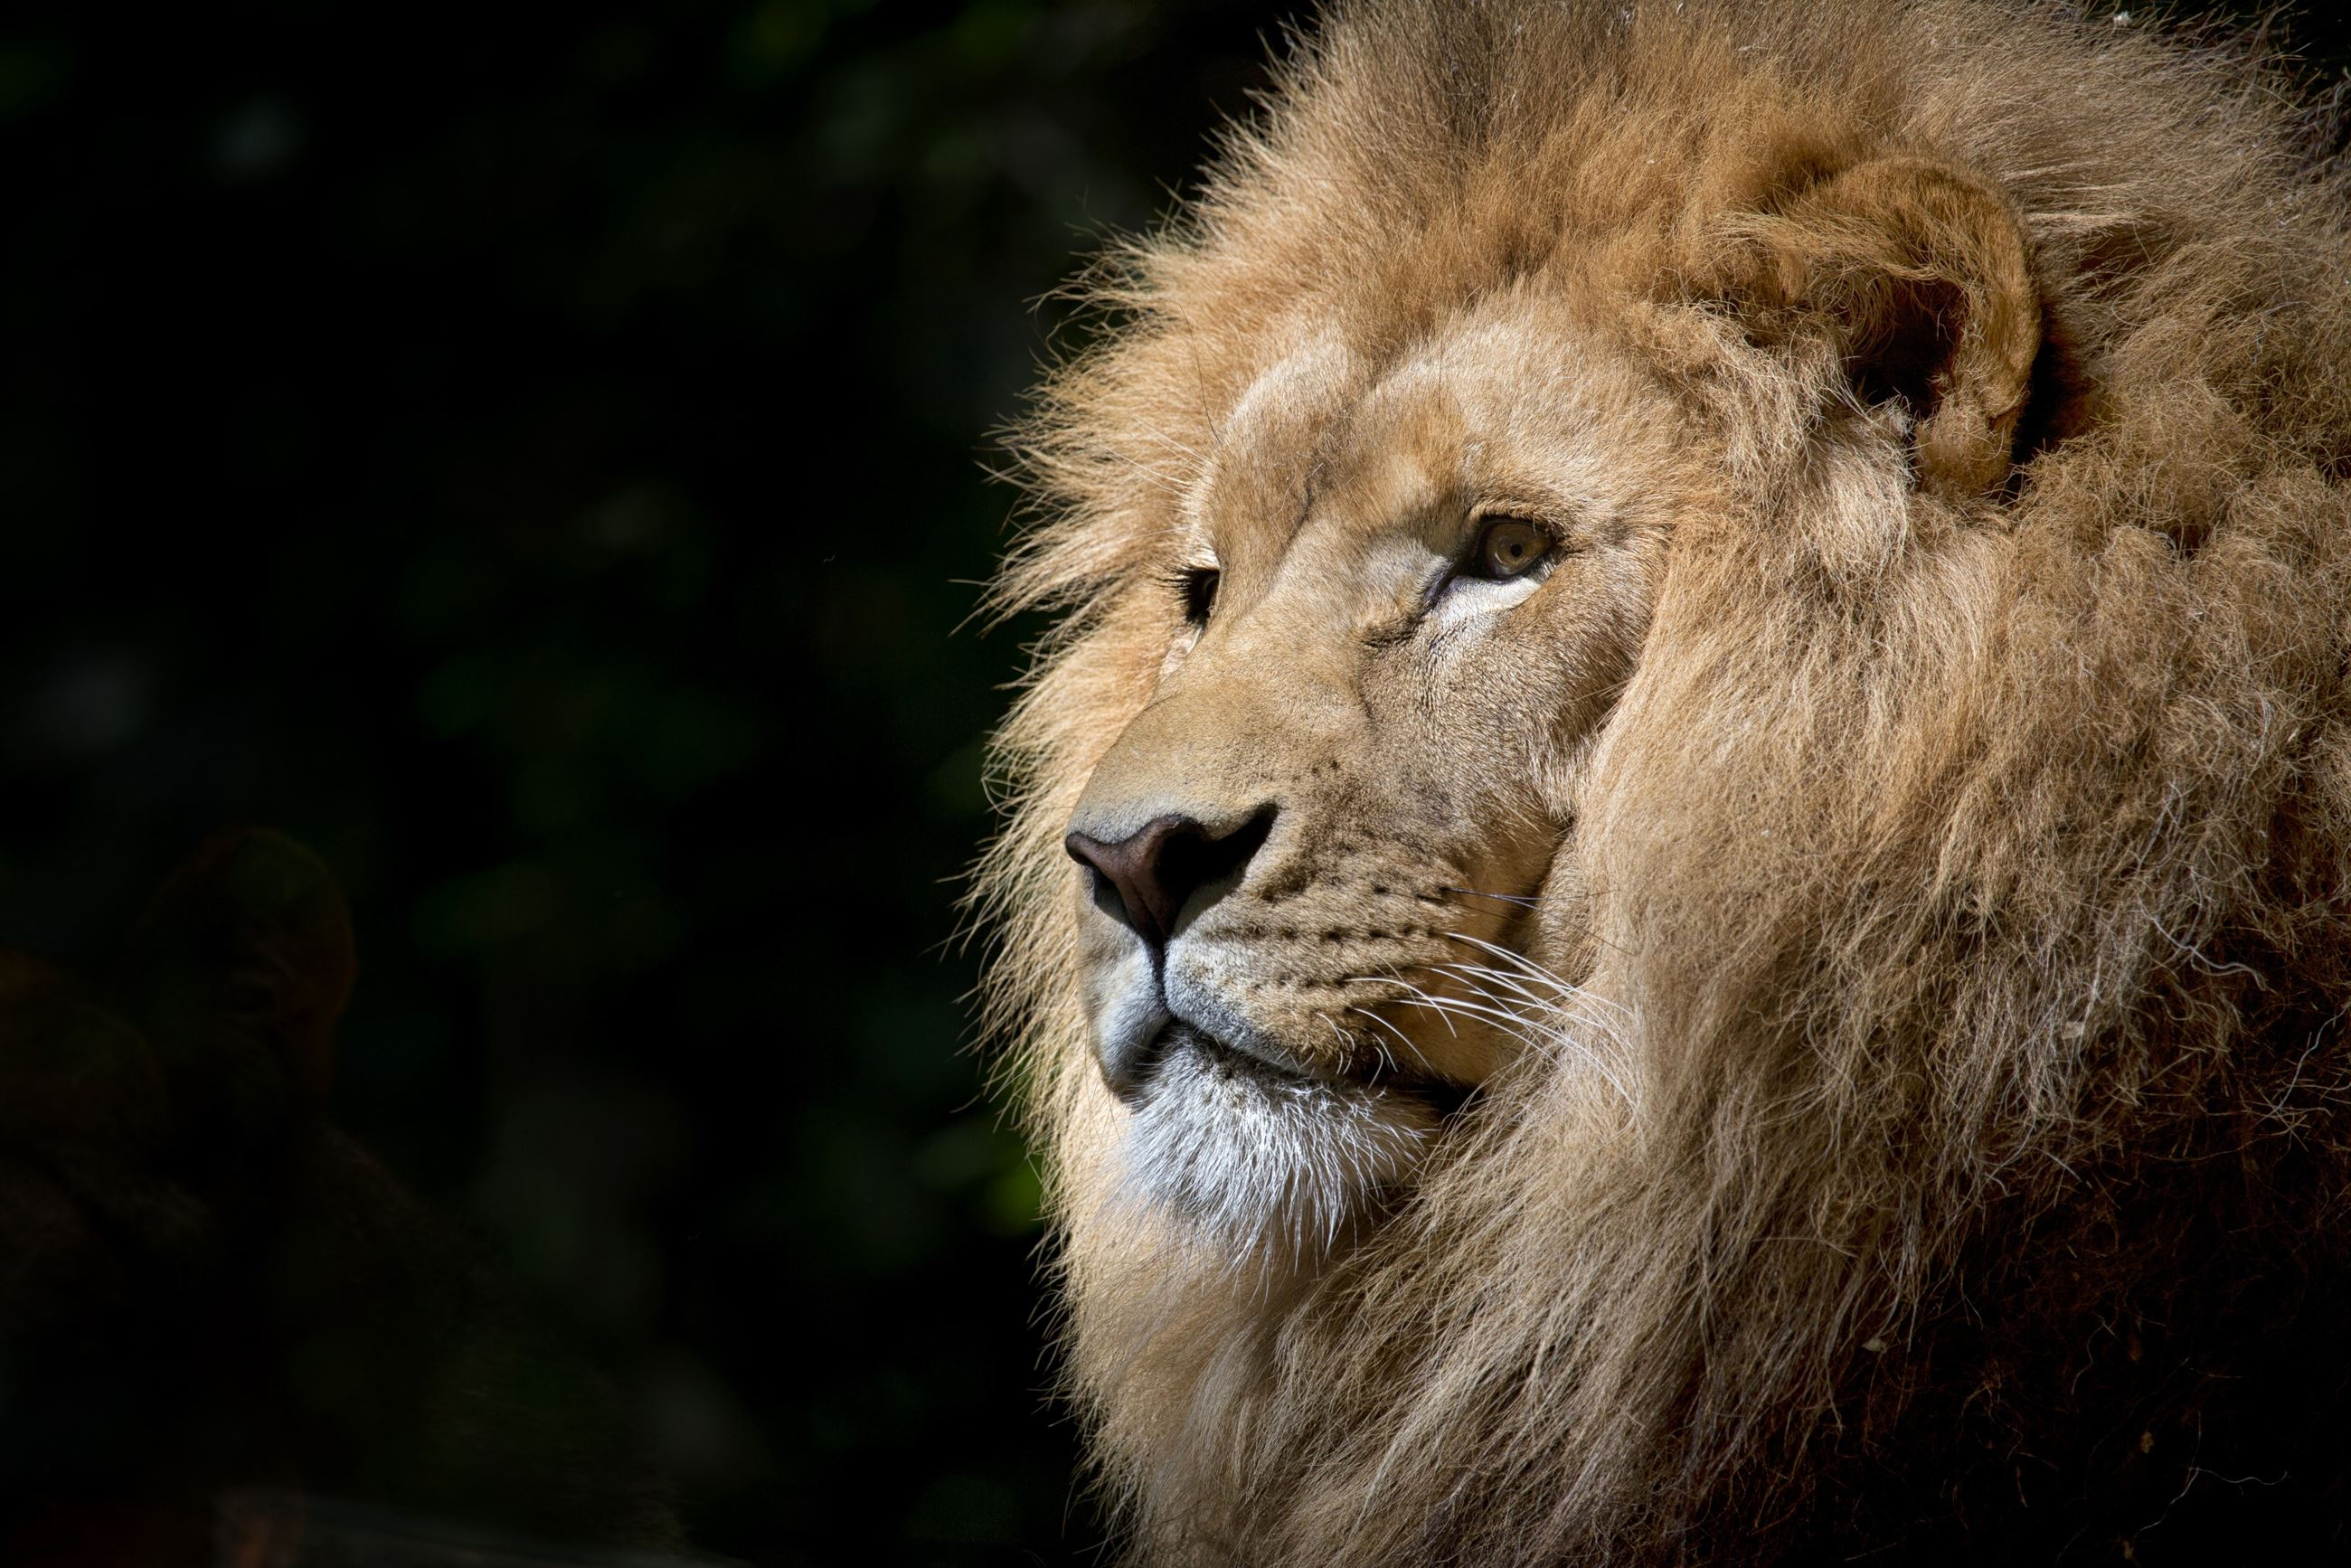 animal-africa-zoo-lion-33045